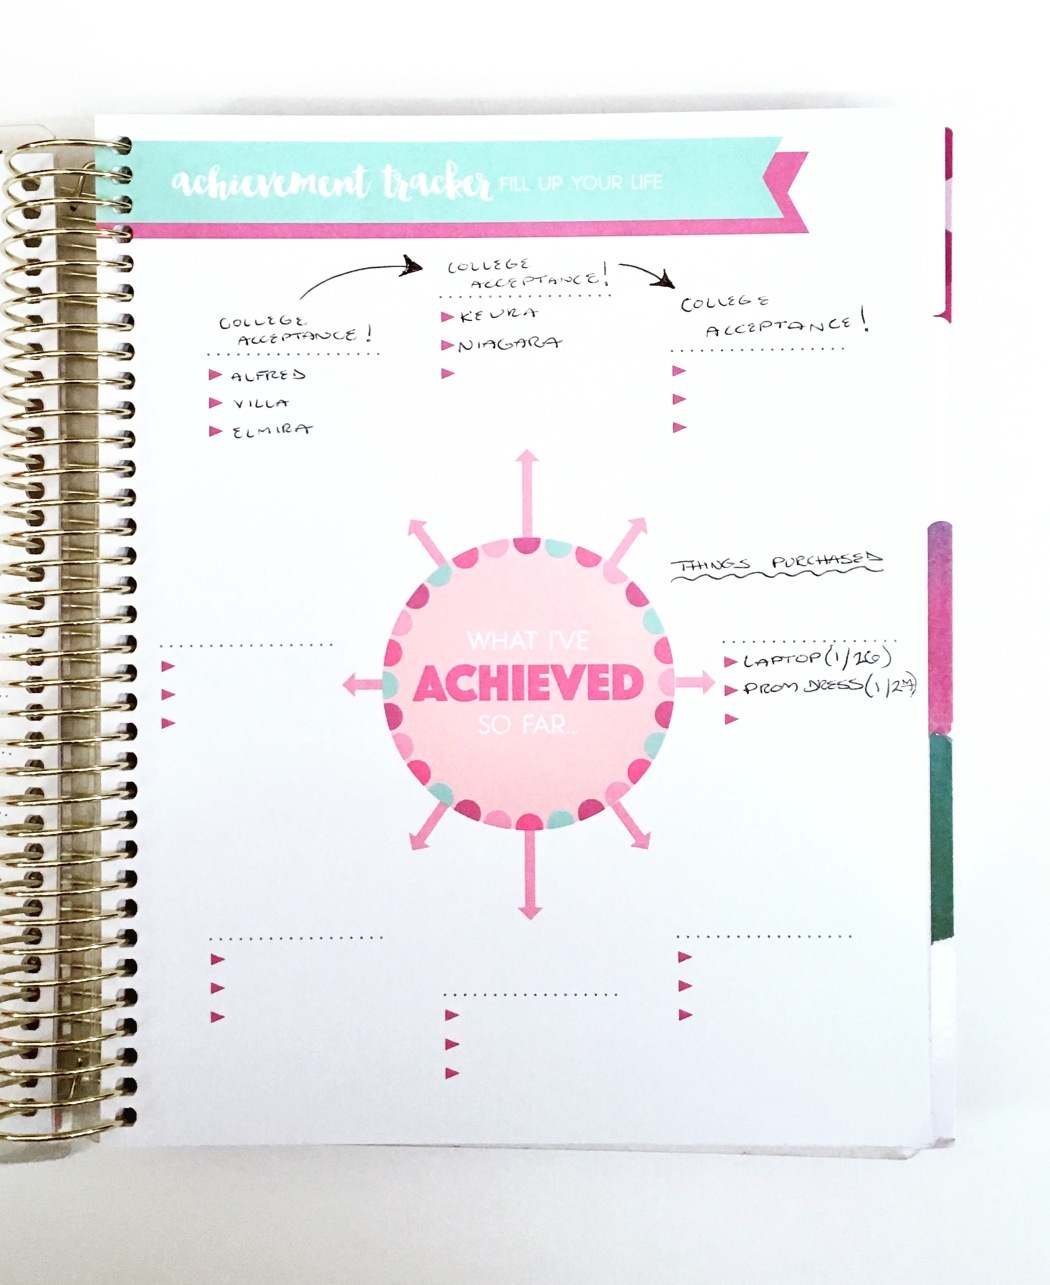 Achievement Tracker